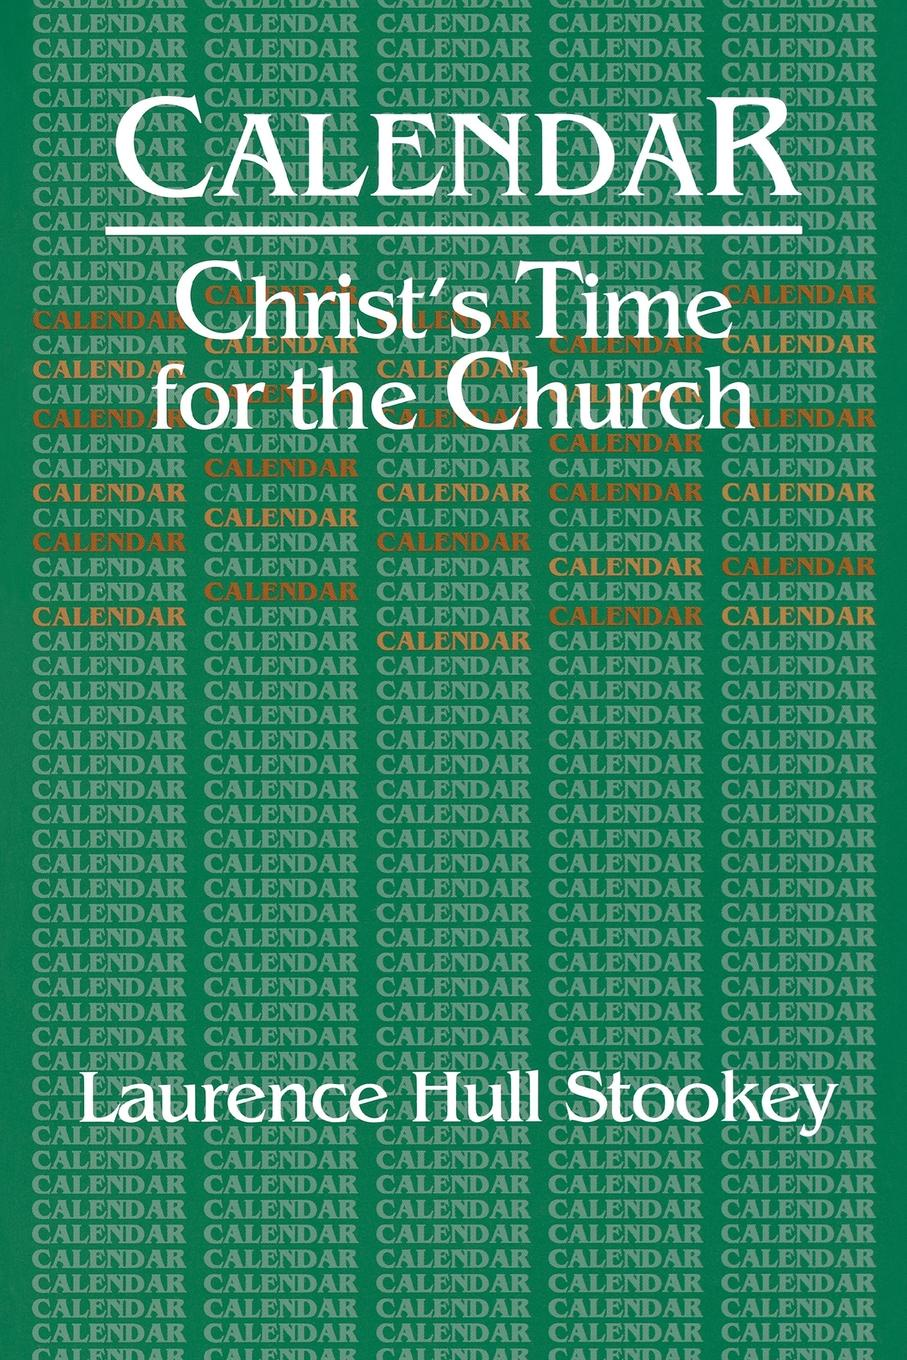 Laurence Hull Stookey Christ's Time for the Church Calendar church s шарф